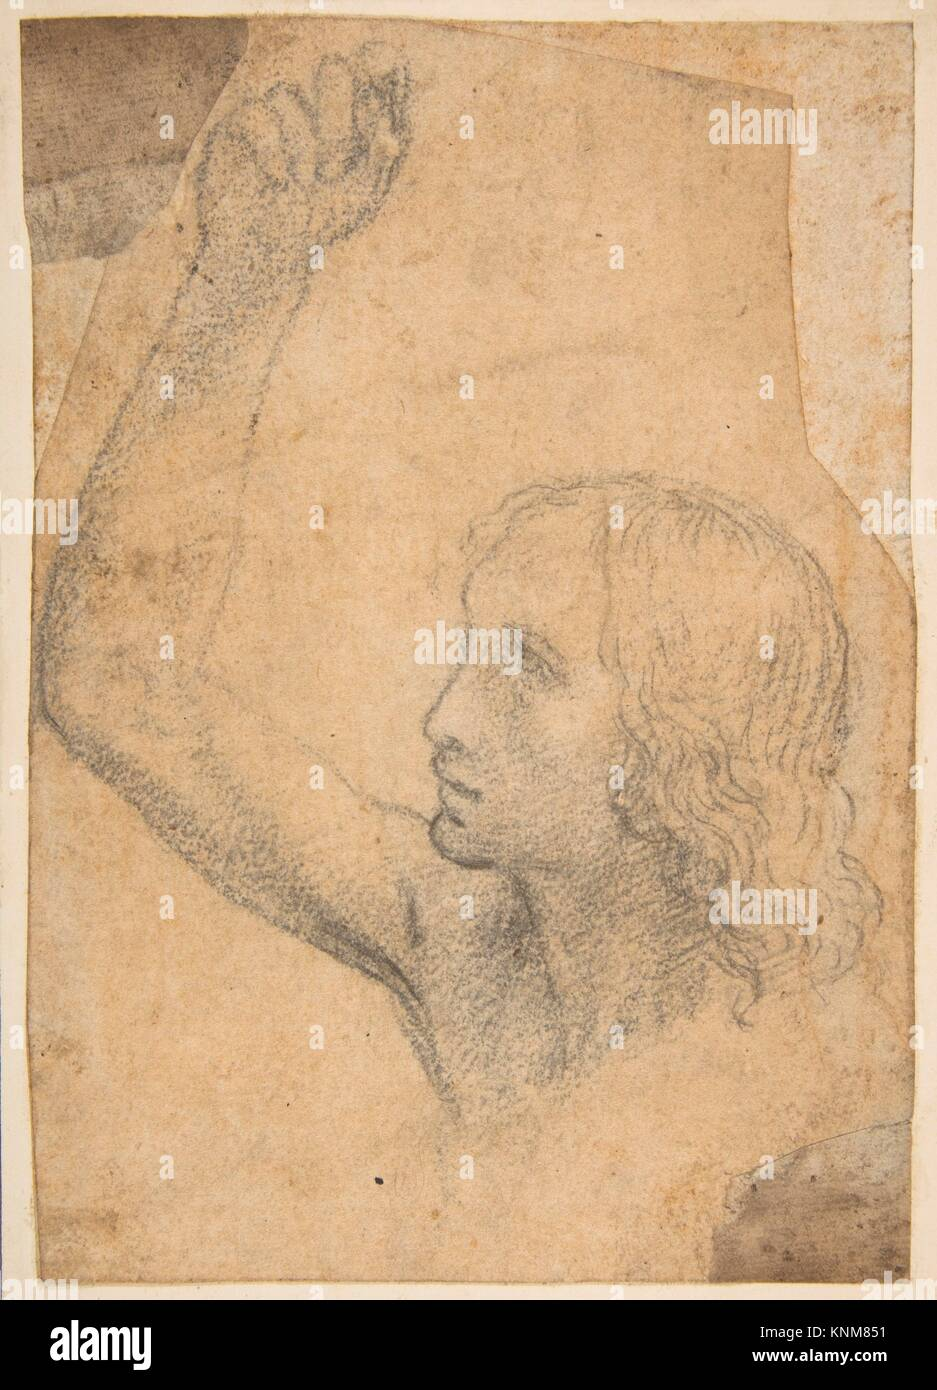 Youth with Right Arm Raised in a Shoulder-Length Portrayal (preparatory study for St. Sebastian). Artist: Timoteo - Stock Image